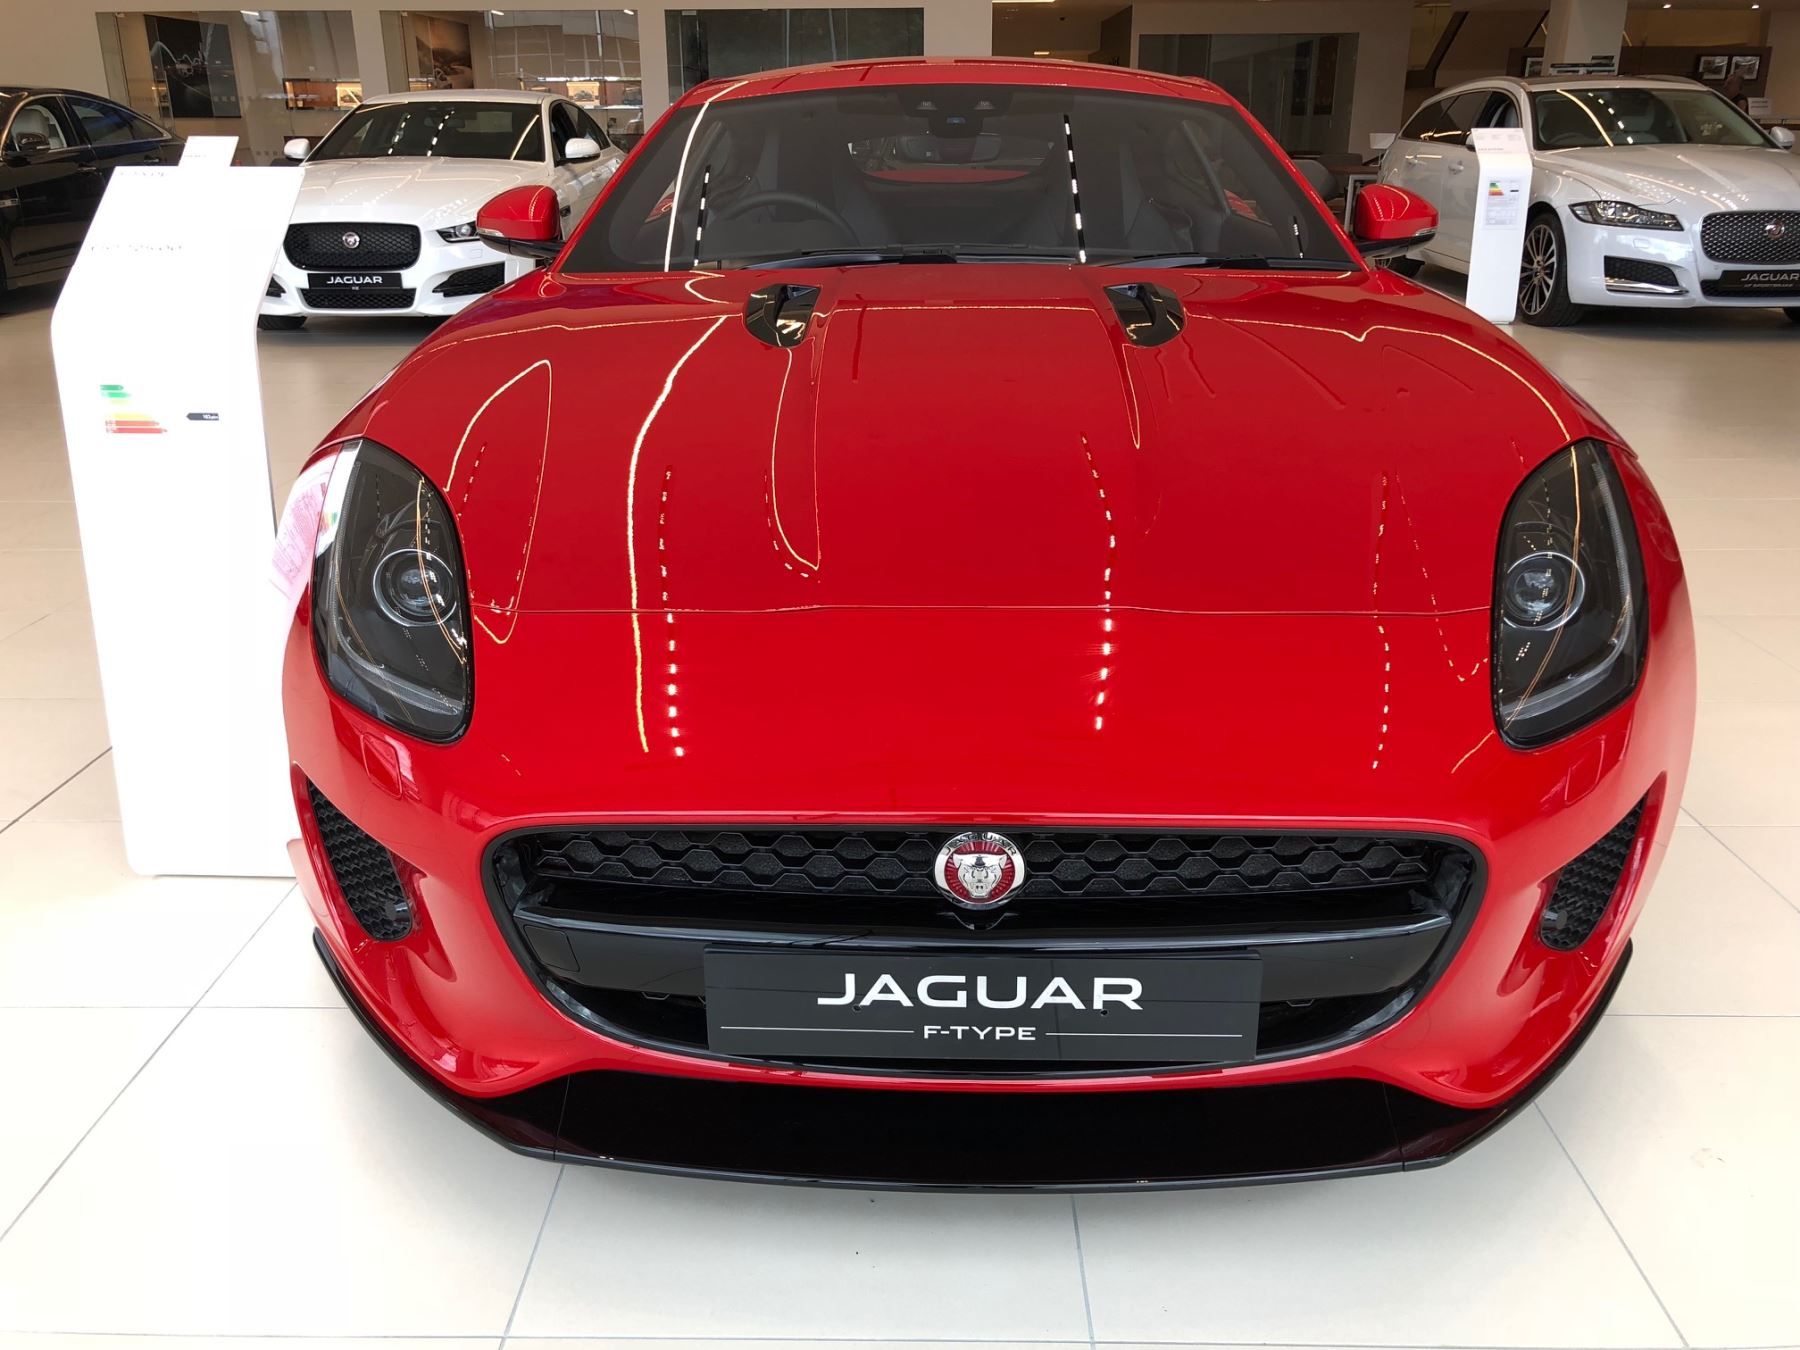 Jaguar F-TYPE 2.0 T/C Petrol RWD Coupe 300PS image 2